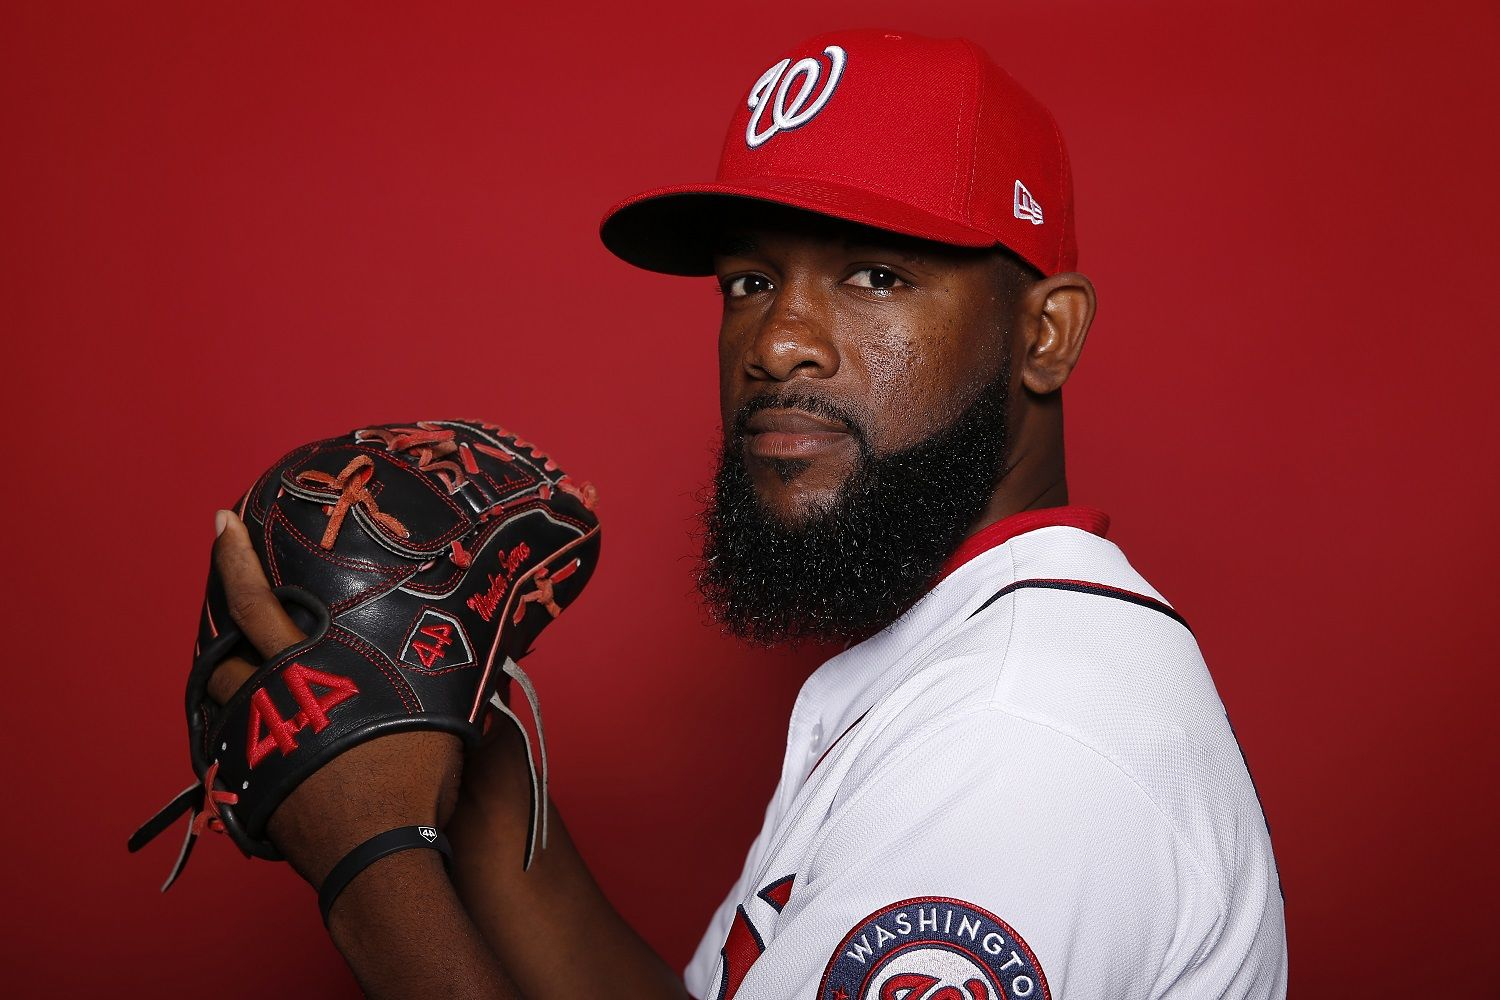 WEST PALM BEACH, FLORIDA - FEBRUARY 22:  Wander Suero #51 of the Washington Nationals poses for a portrait on Photo Day at FITTEAM Ballpark of The Palm Beaches during on February 22, 2019 in West Palm Beach, Florida. (Photo by Michael Reaves/Getty Images)